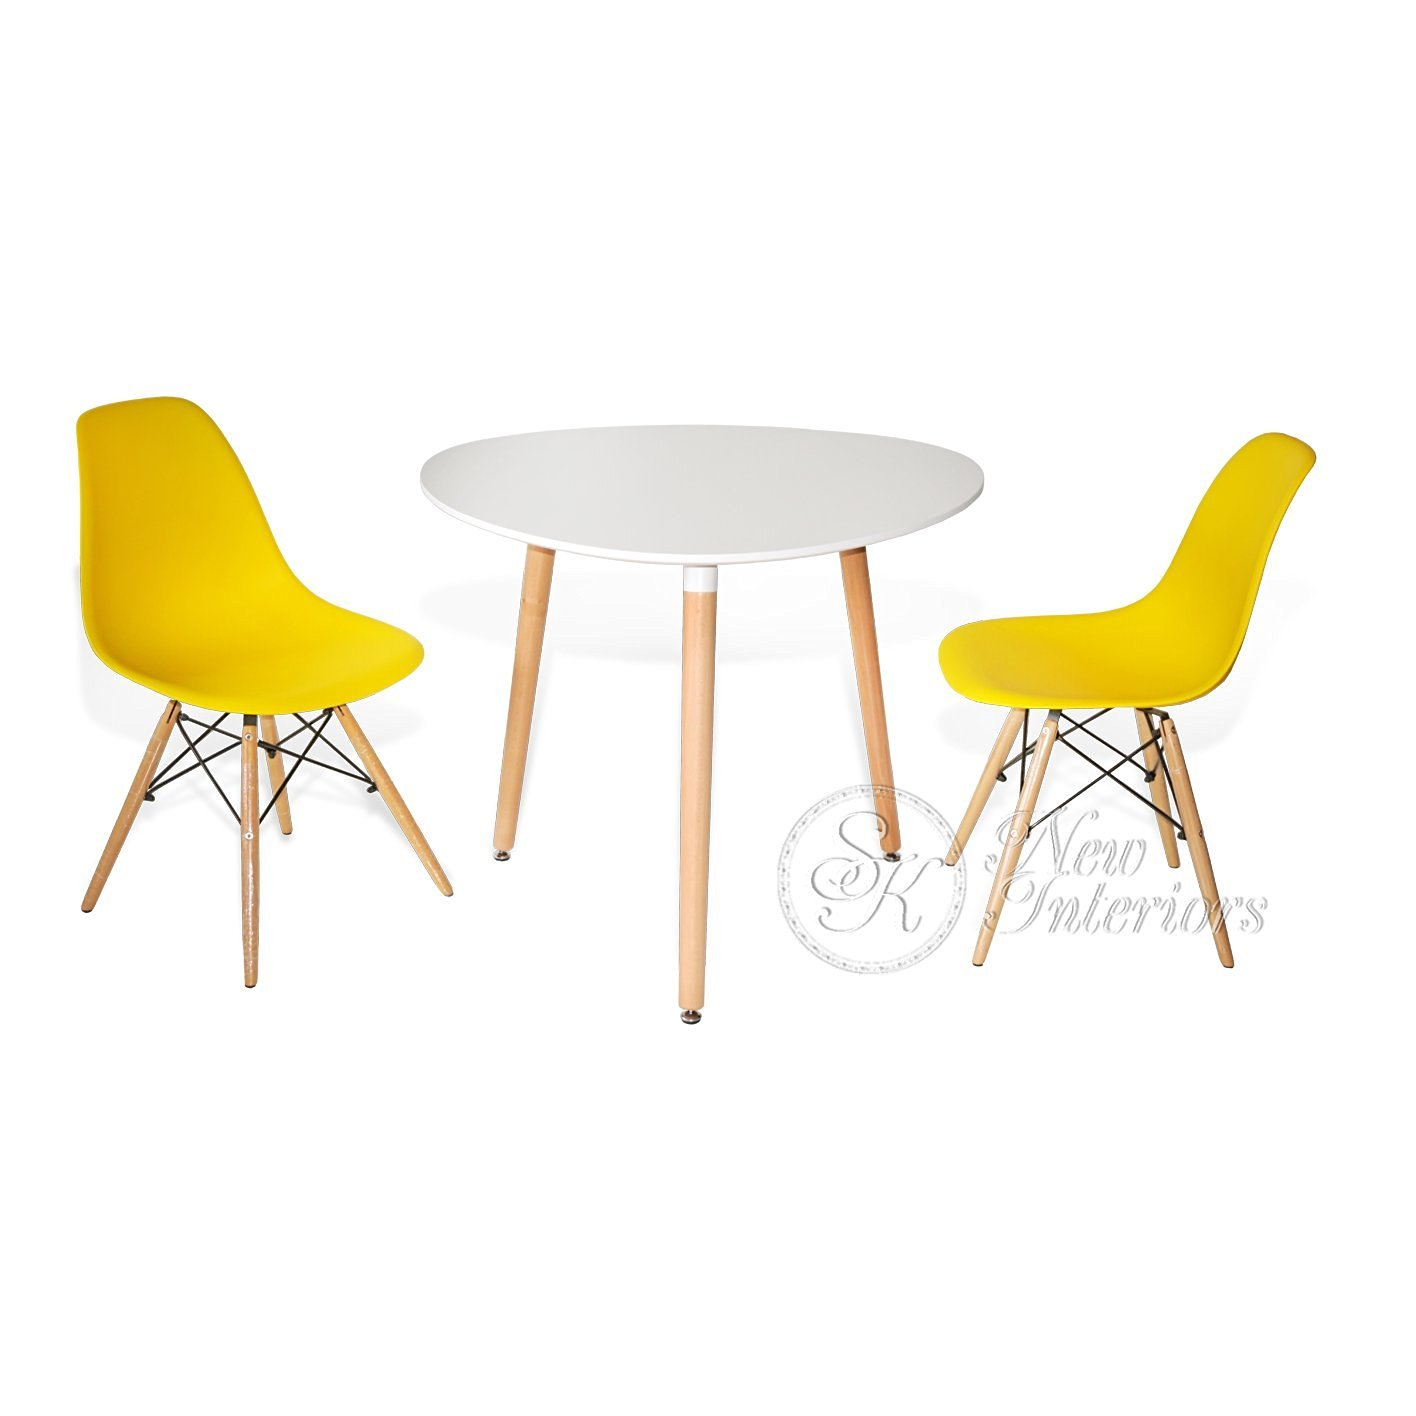 Buy 3 Piece Dining Set Rounded Triangle Round White Table ...